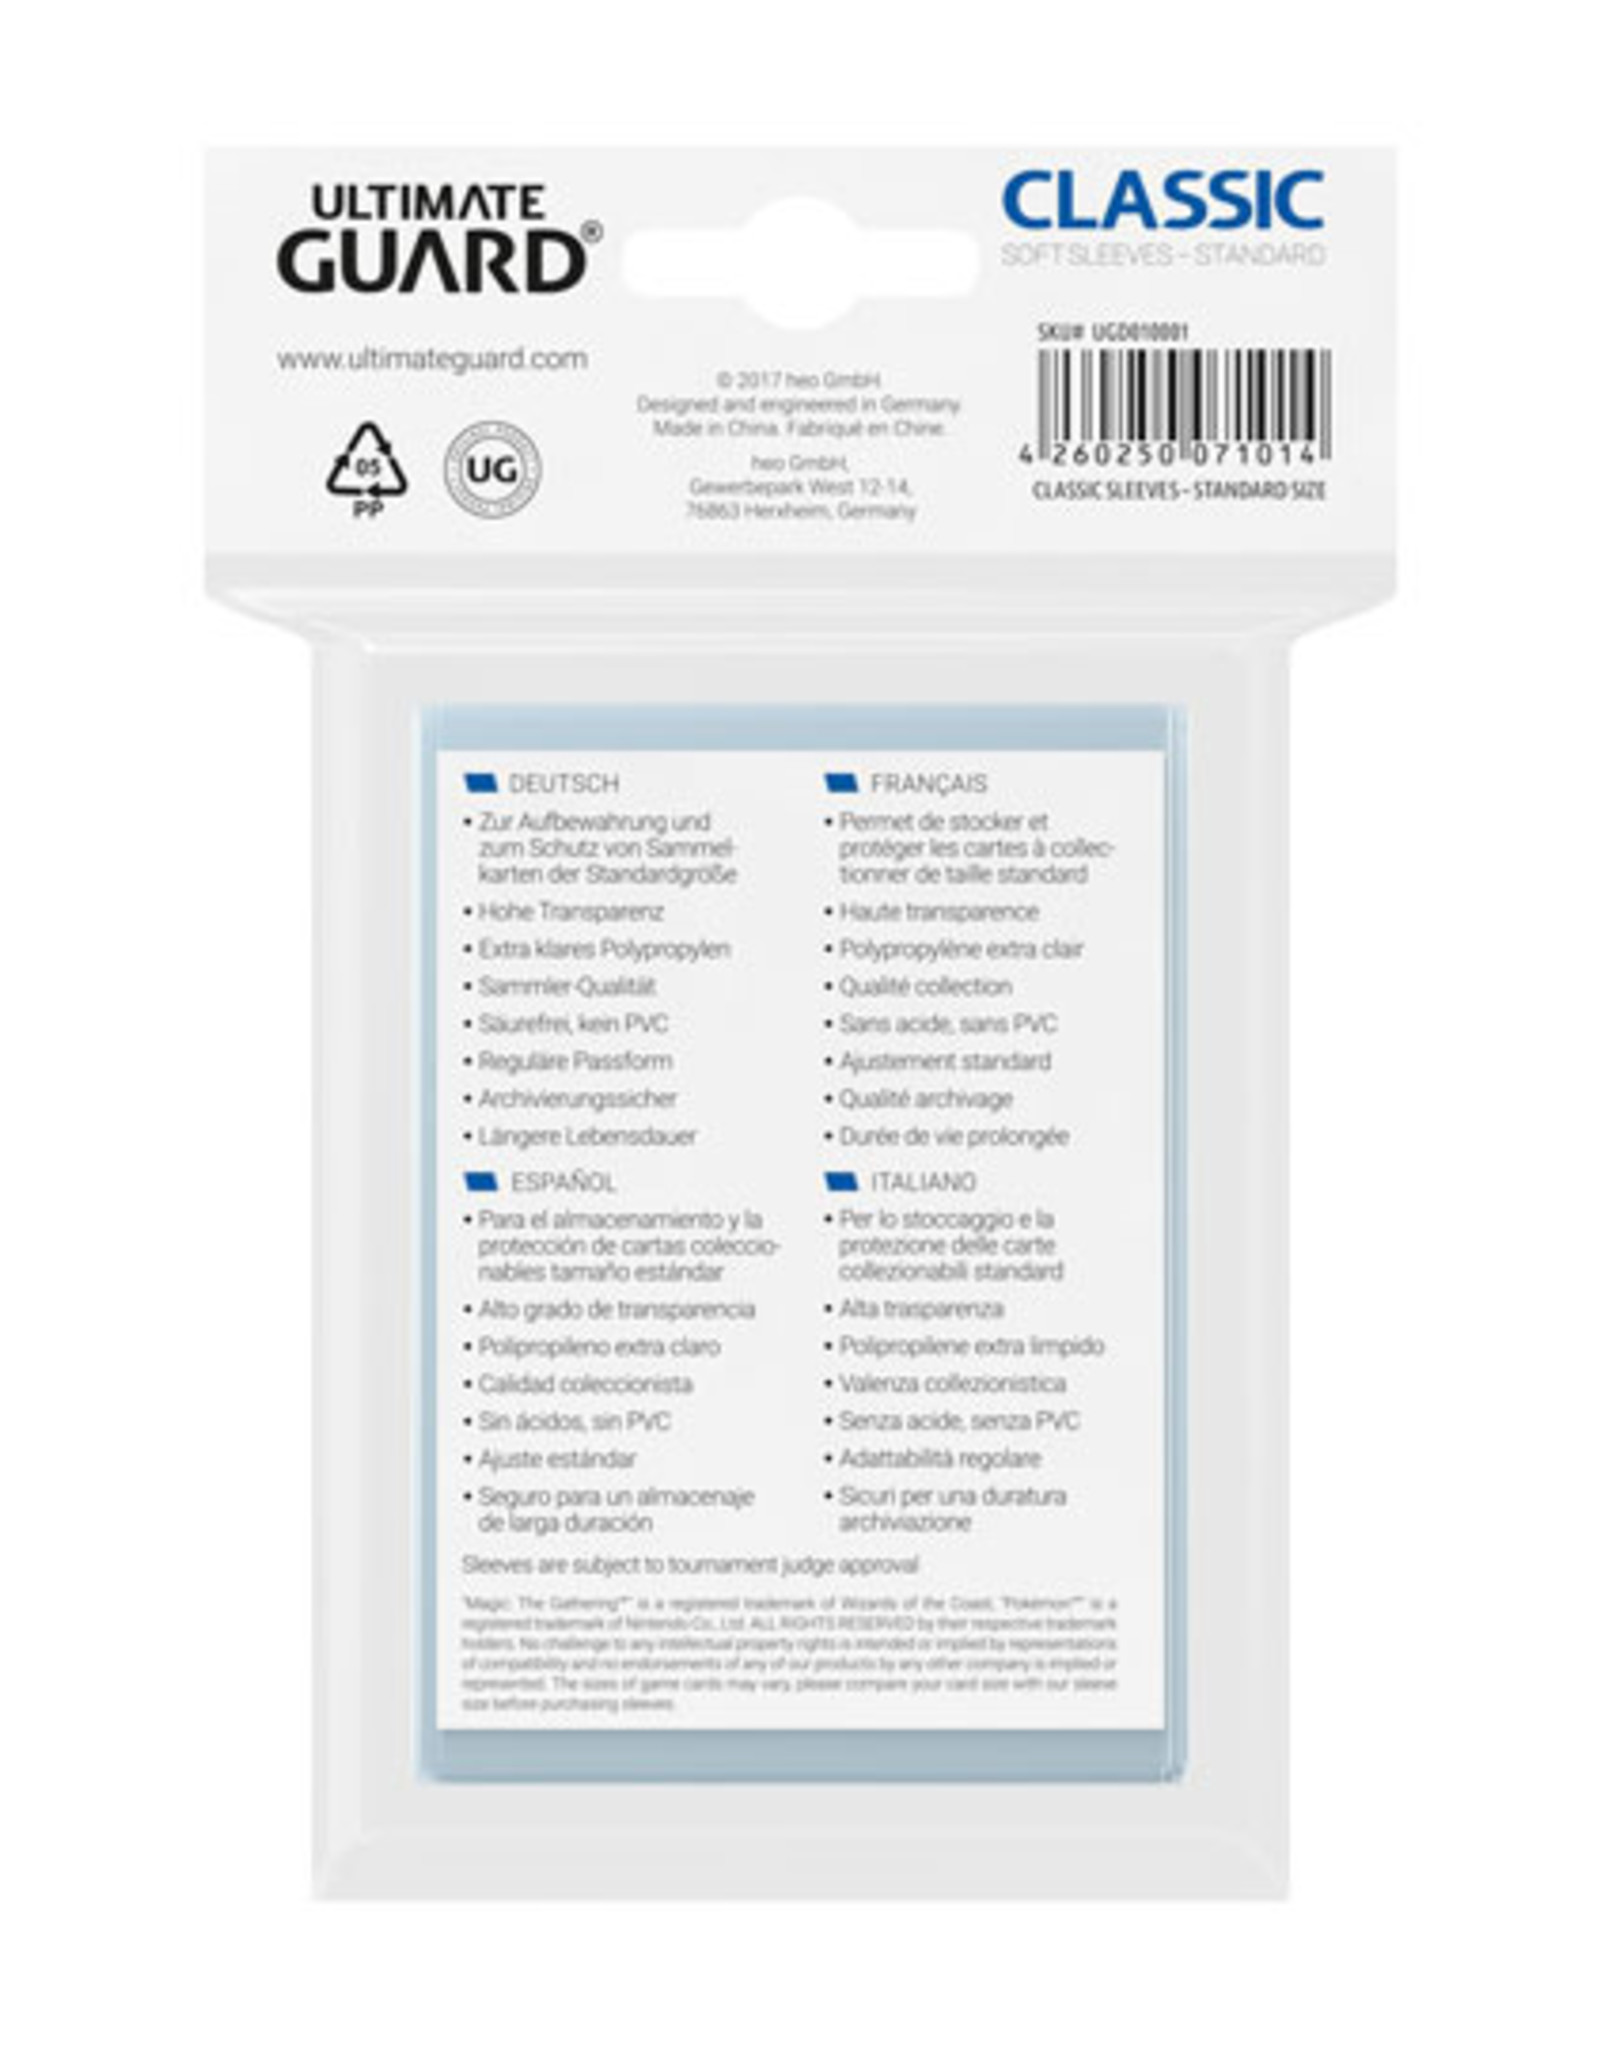 ULTIMATE GUARD Ultimate Guard Classic Soft Sleeves Standard Size Transparent (100)